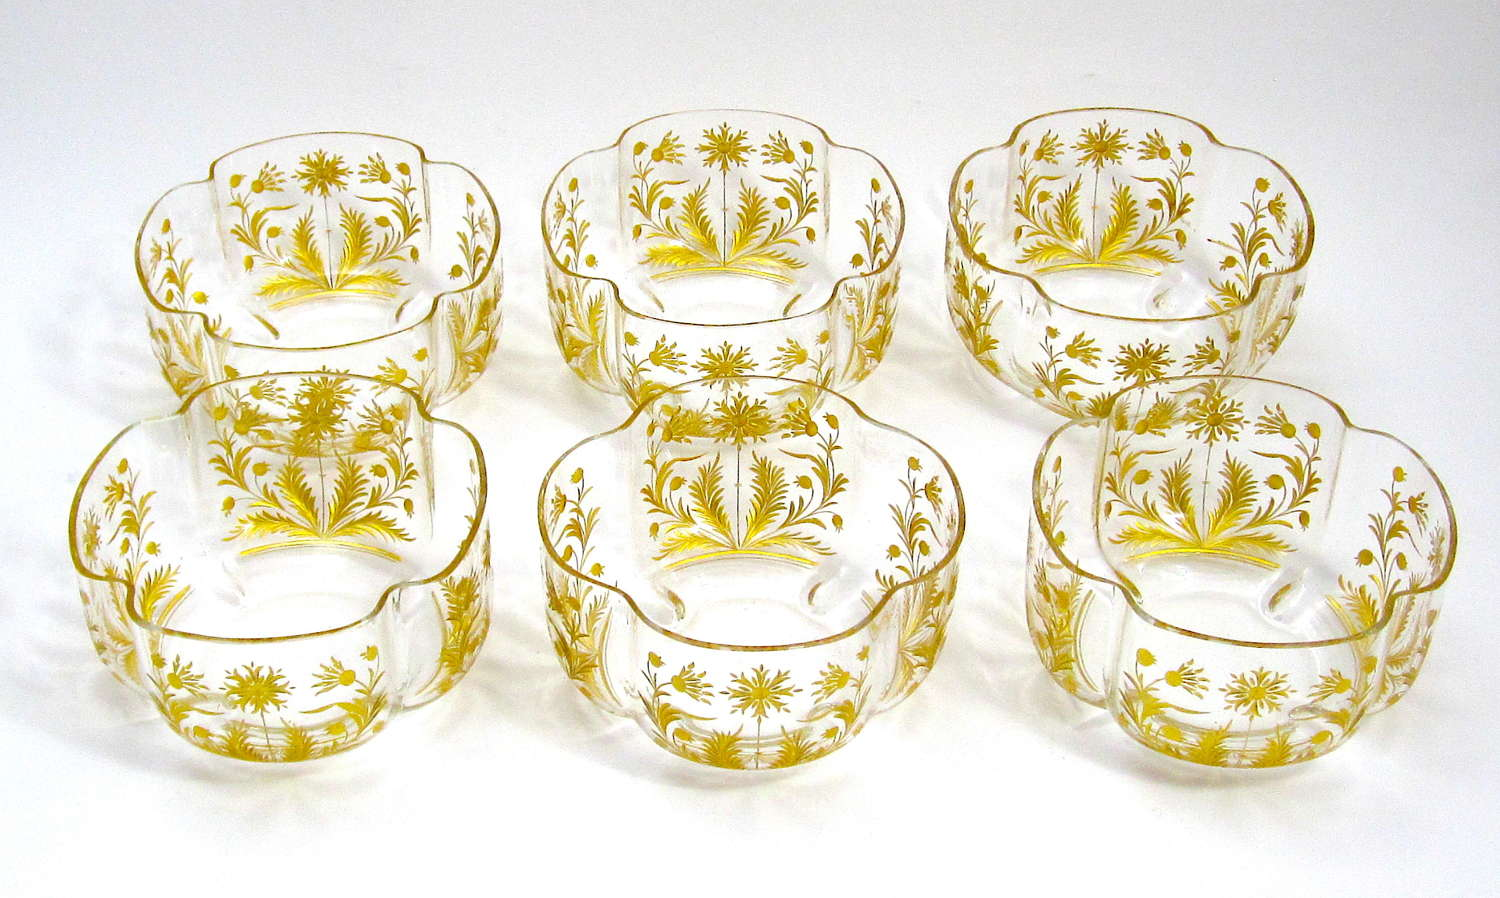 A Beautiful Set of 6 Antique St Louis Gilded Bowls